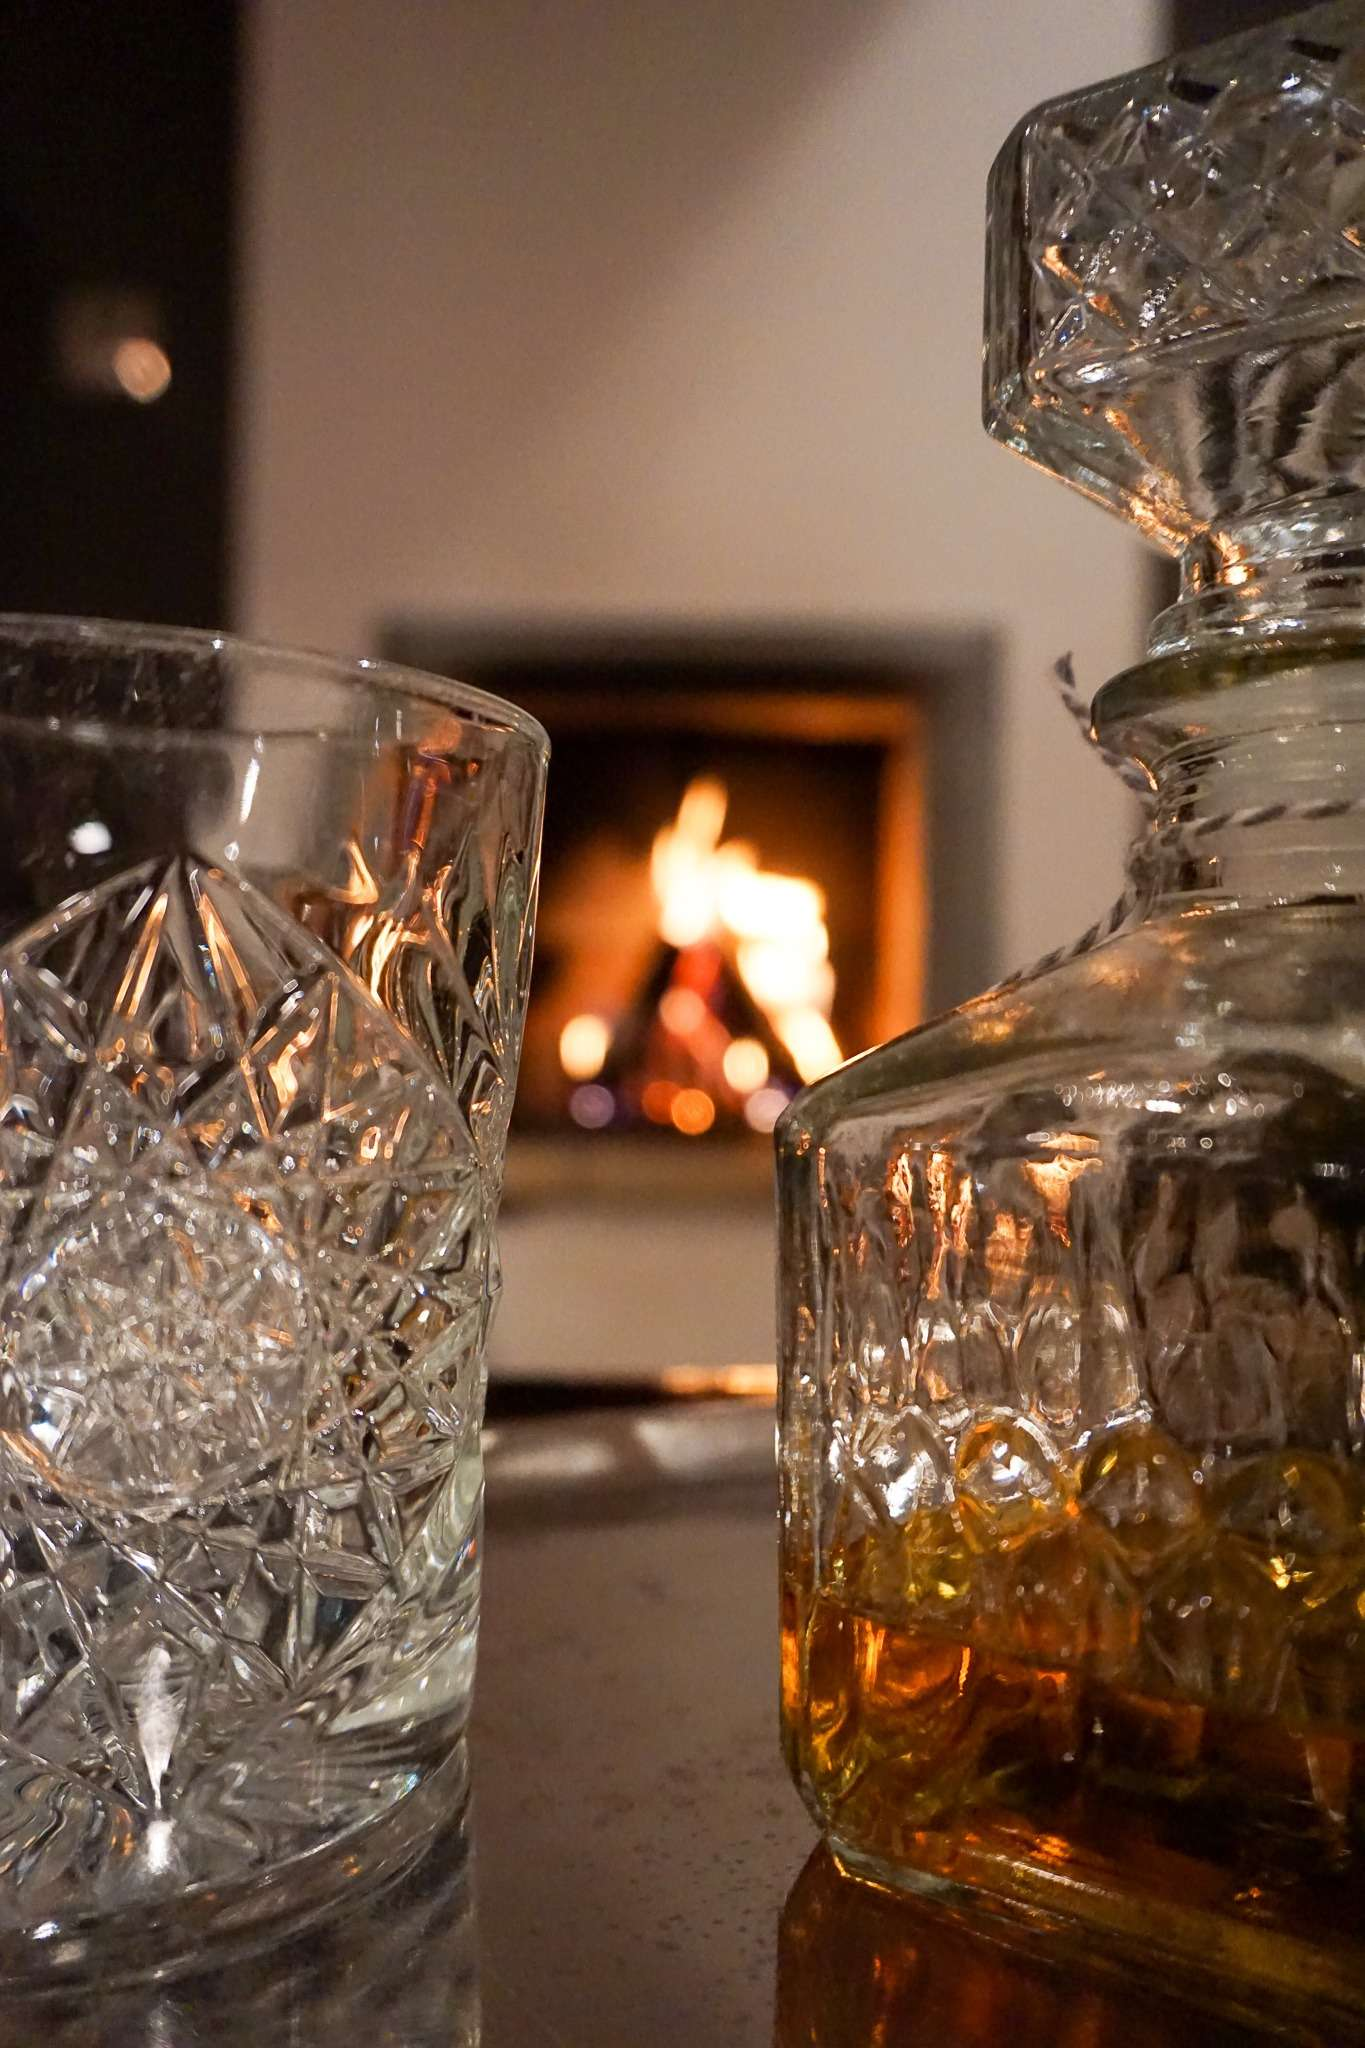 whiskey glass and decanter in front of a lit fireplace at Nimb Hotel Copenhagen